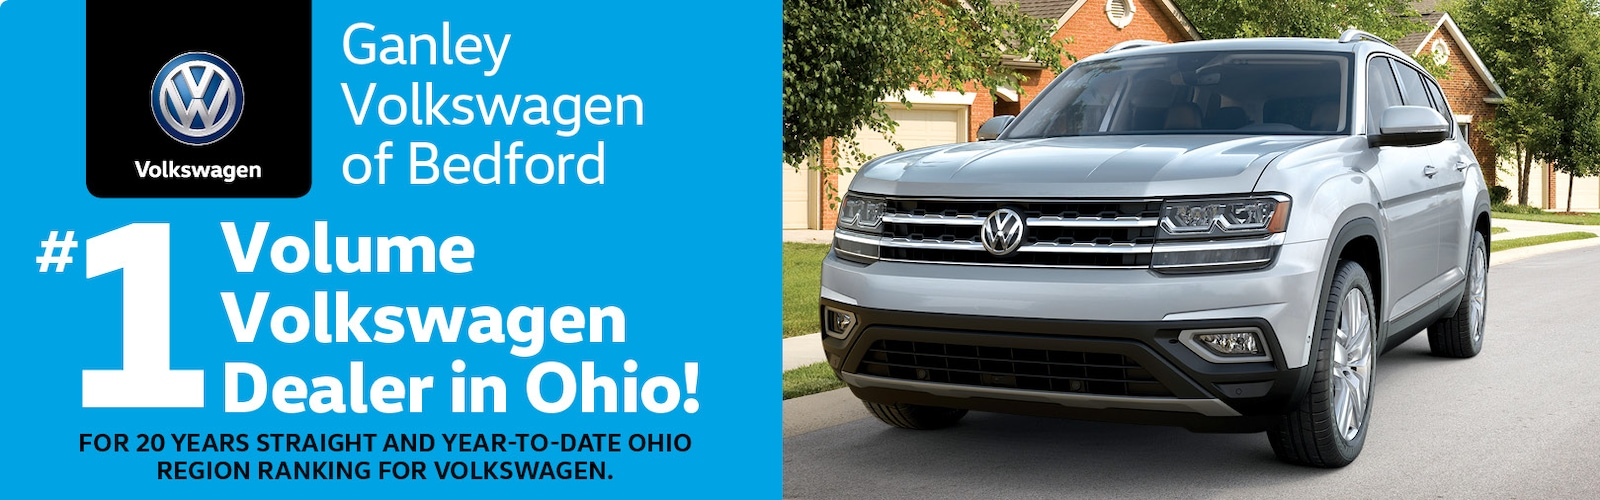 Ganley Volkswagen Of Bedford OH New And Used Volkswagen OH - Volkswagen dealers in ohio